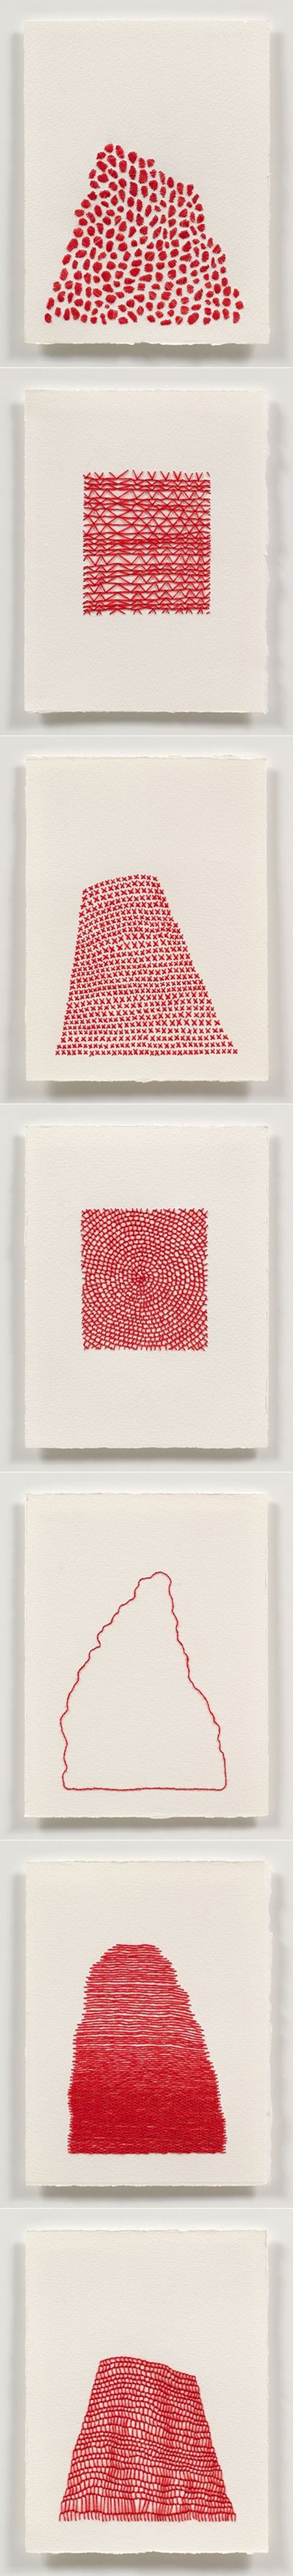 emily barletta - embroidery on paper.